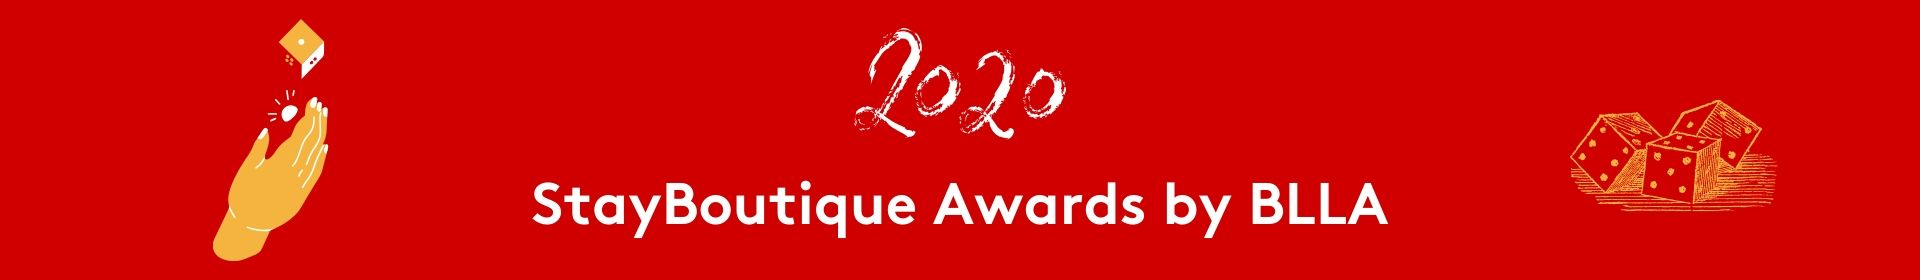 2020 StayBoutique Awards by BLLA Event Banner